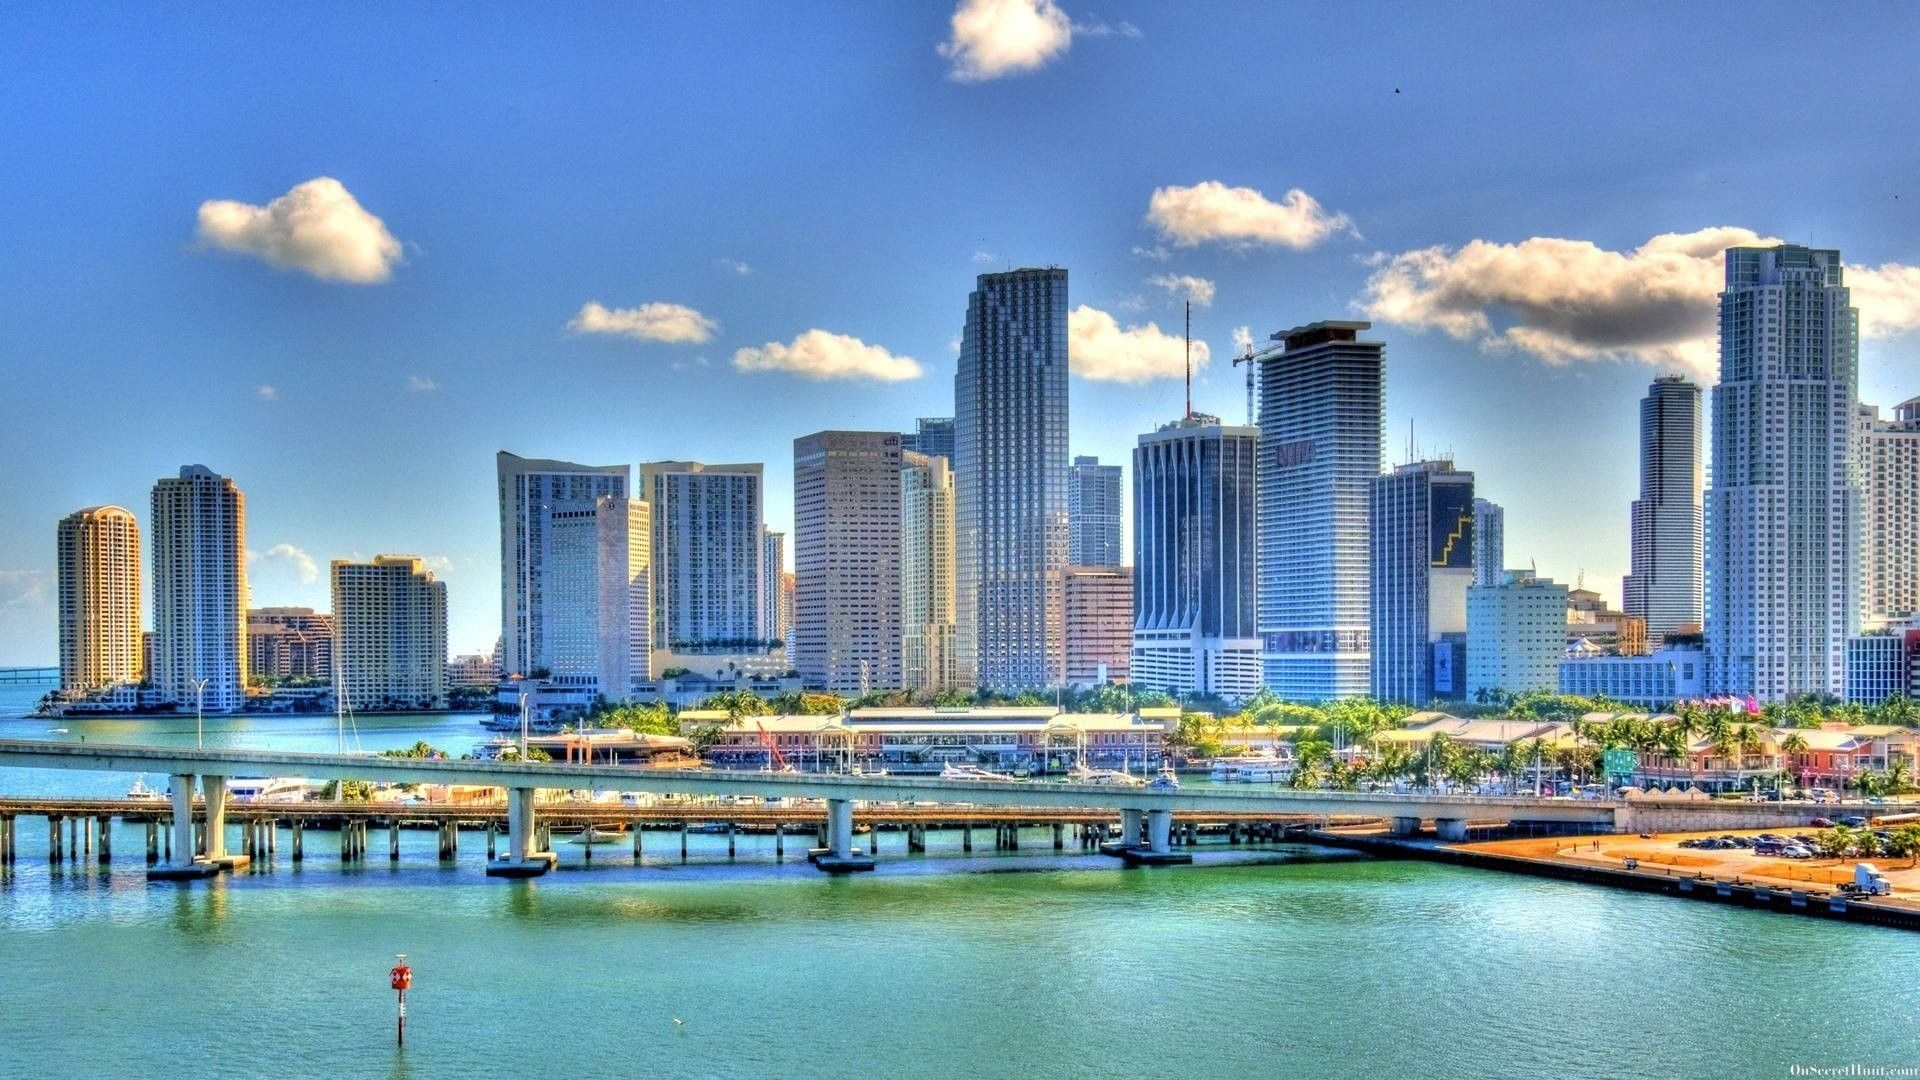 Miami Skyline Wallpapers - Top Free